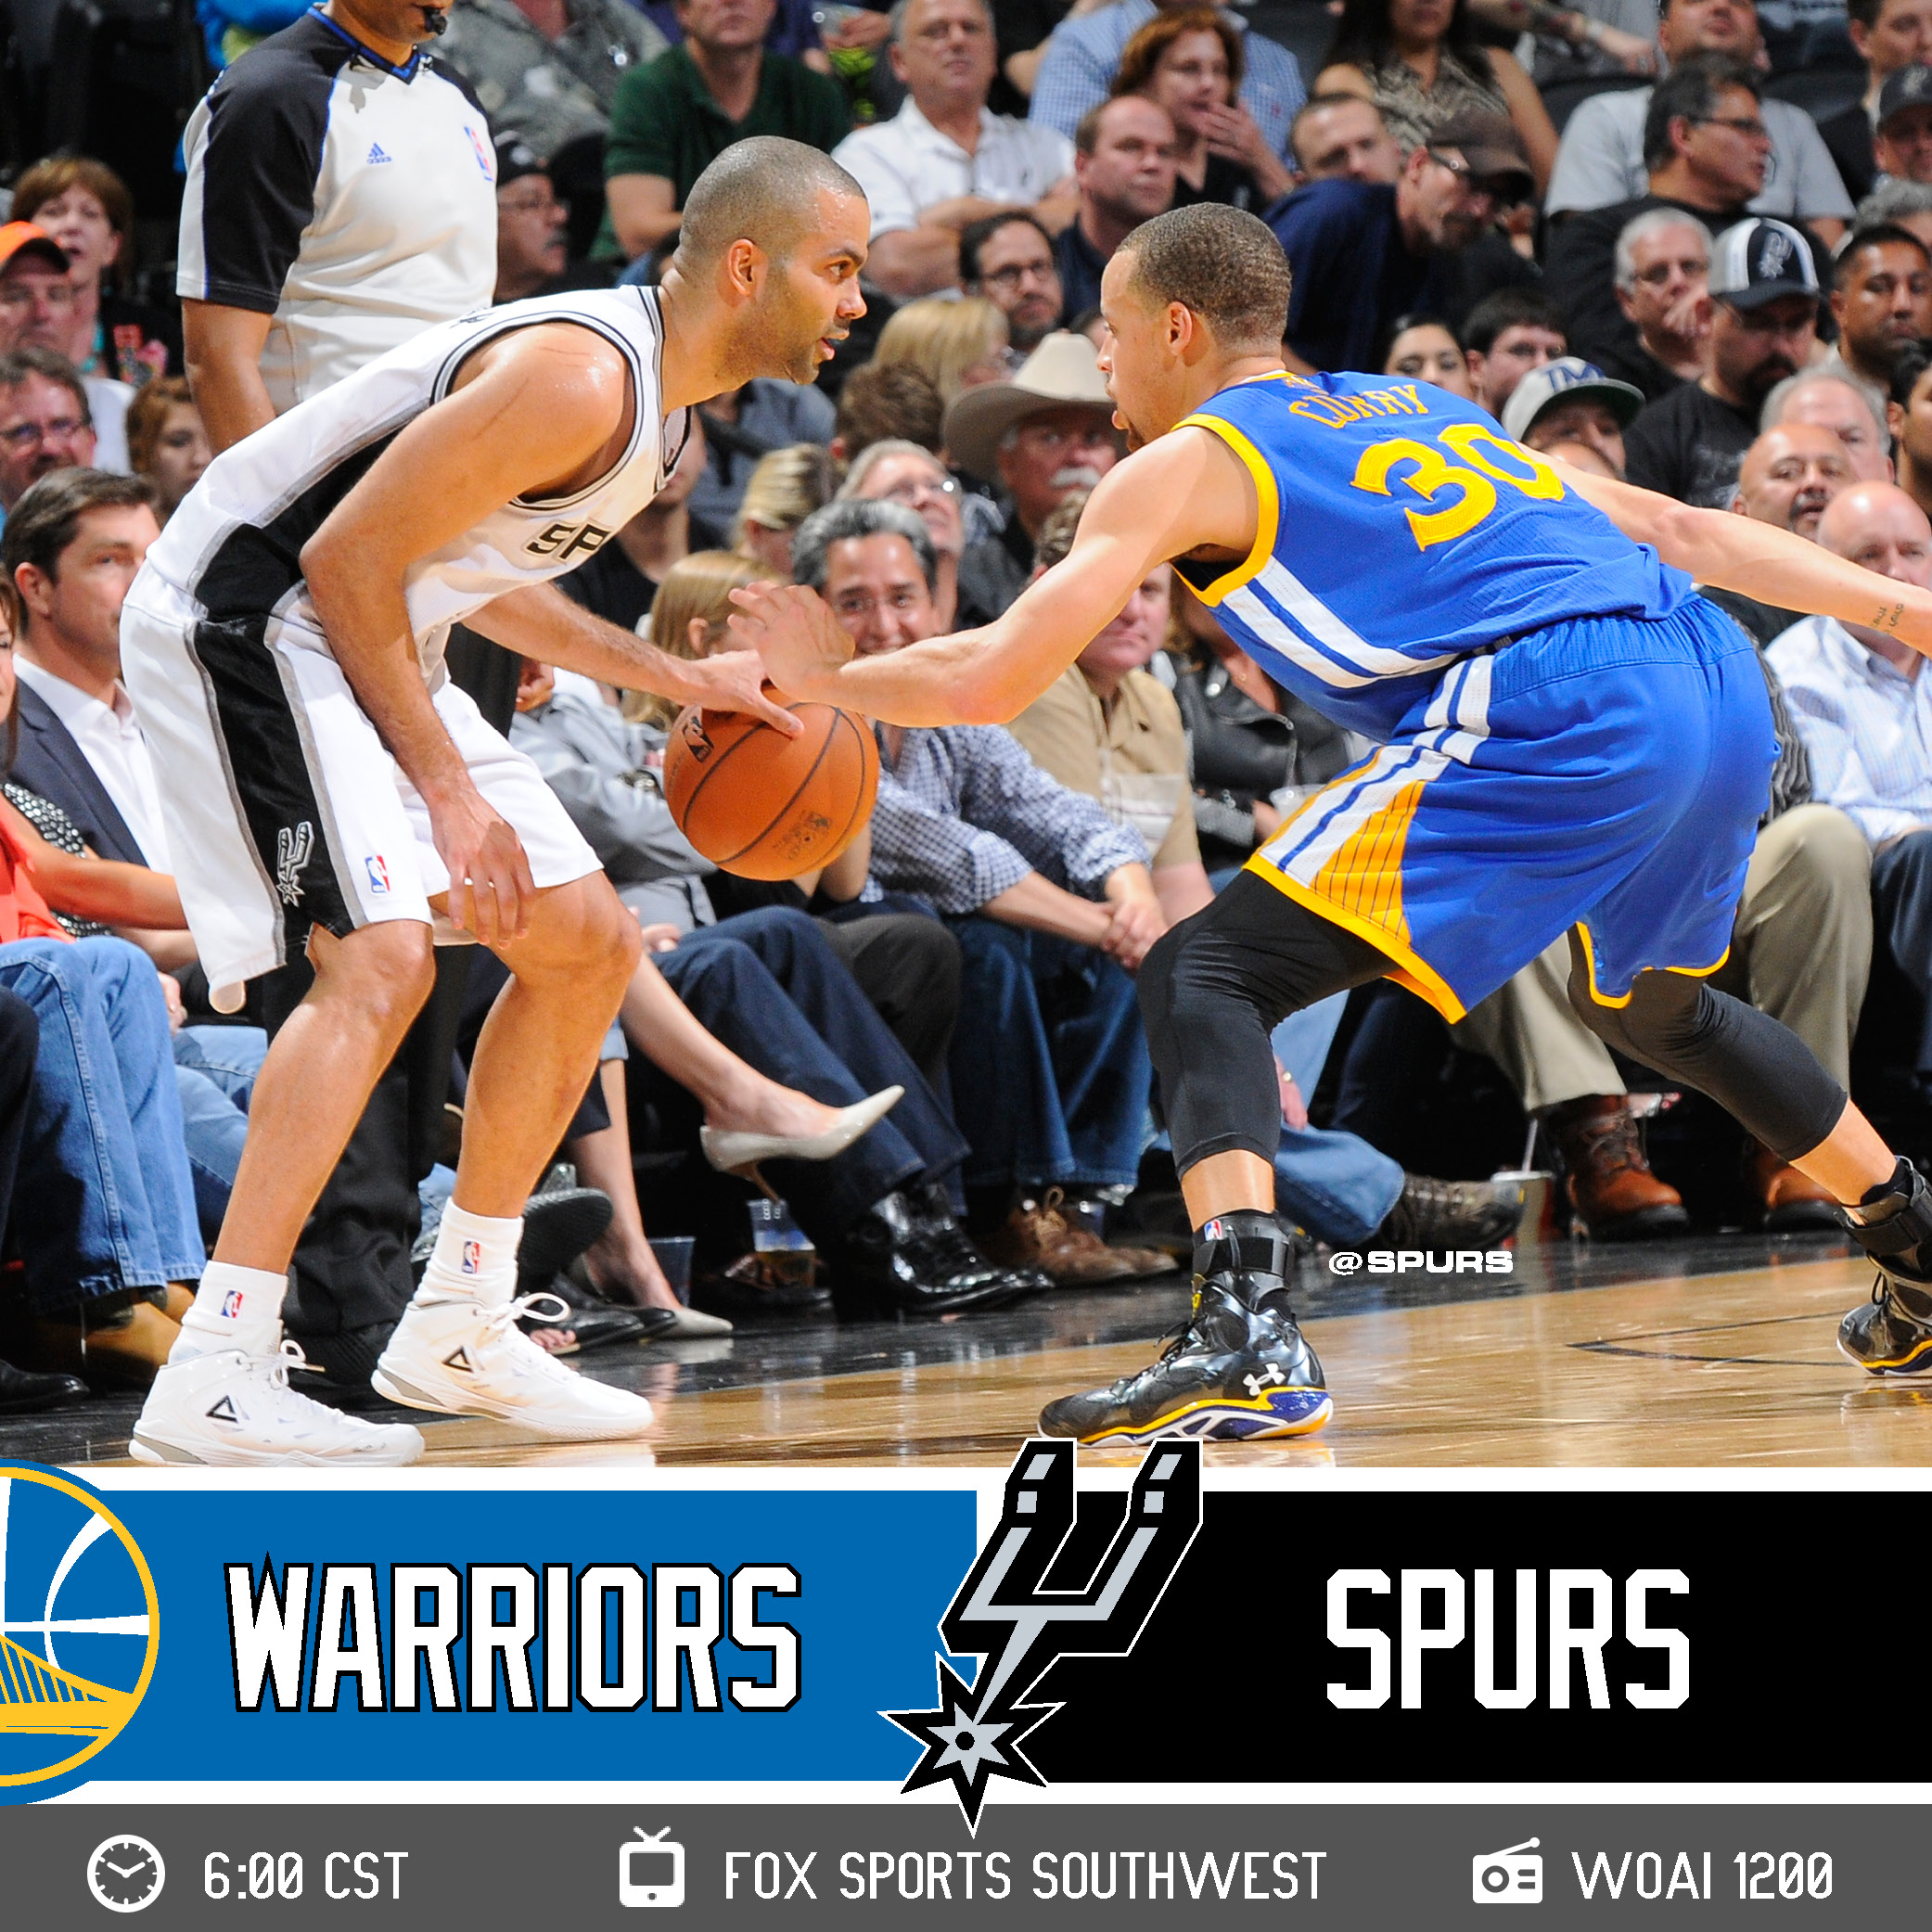 Spurs Vs Warriors Preview 4/5/15